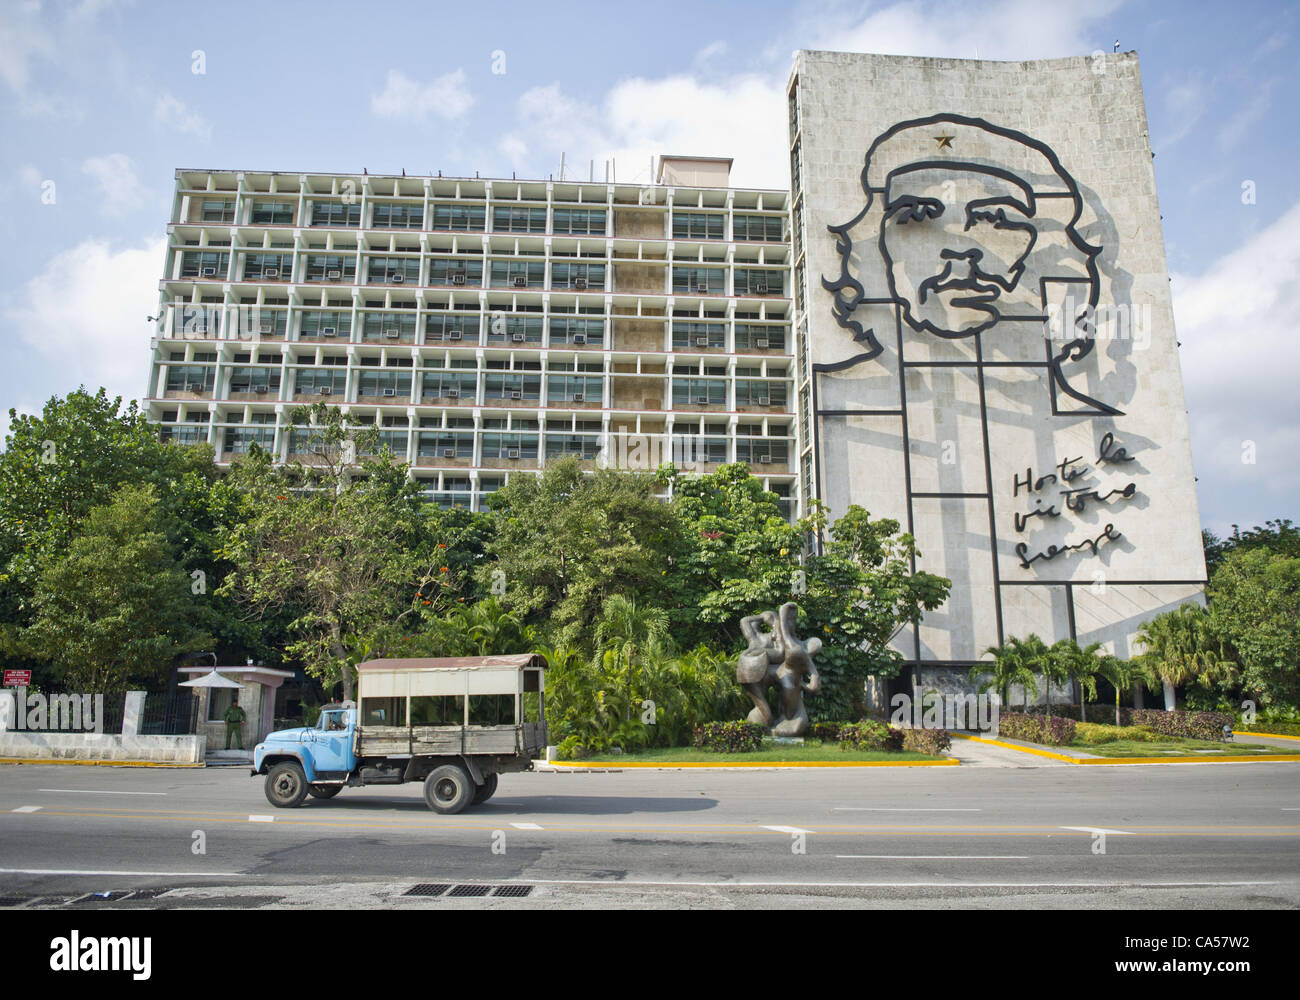 May 6, 2012 - Havana, U.S. - Revered revolutionary hero Che GuevaraÕs image adorns the side of a government - Stock Image